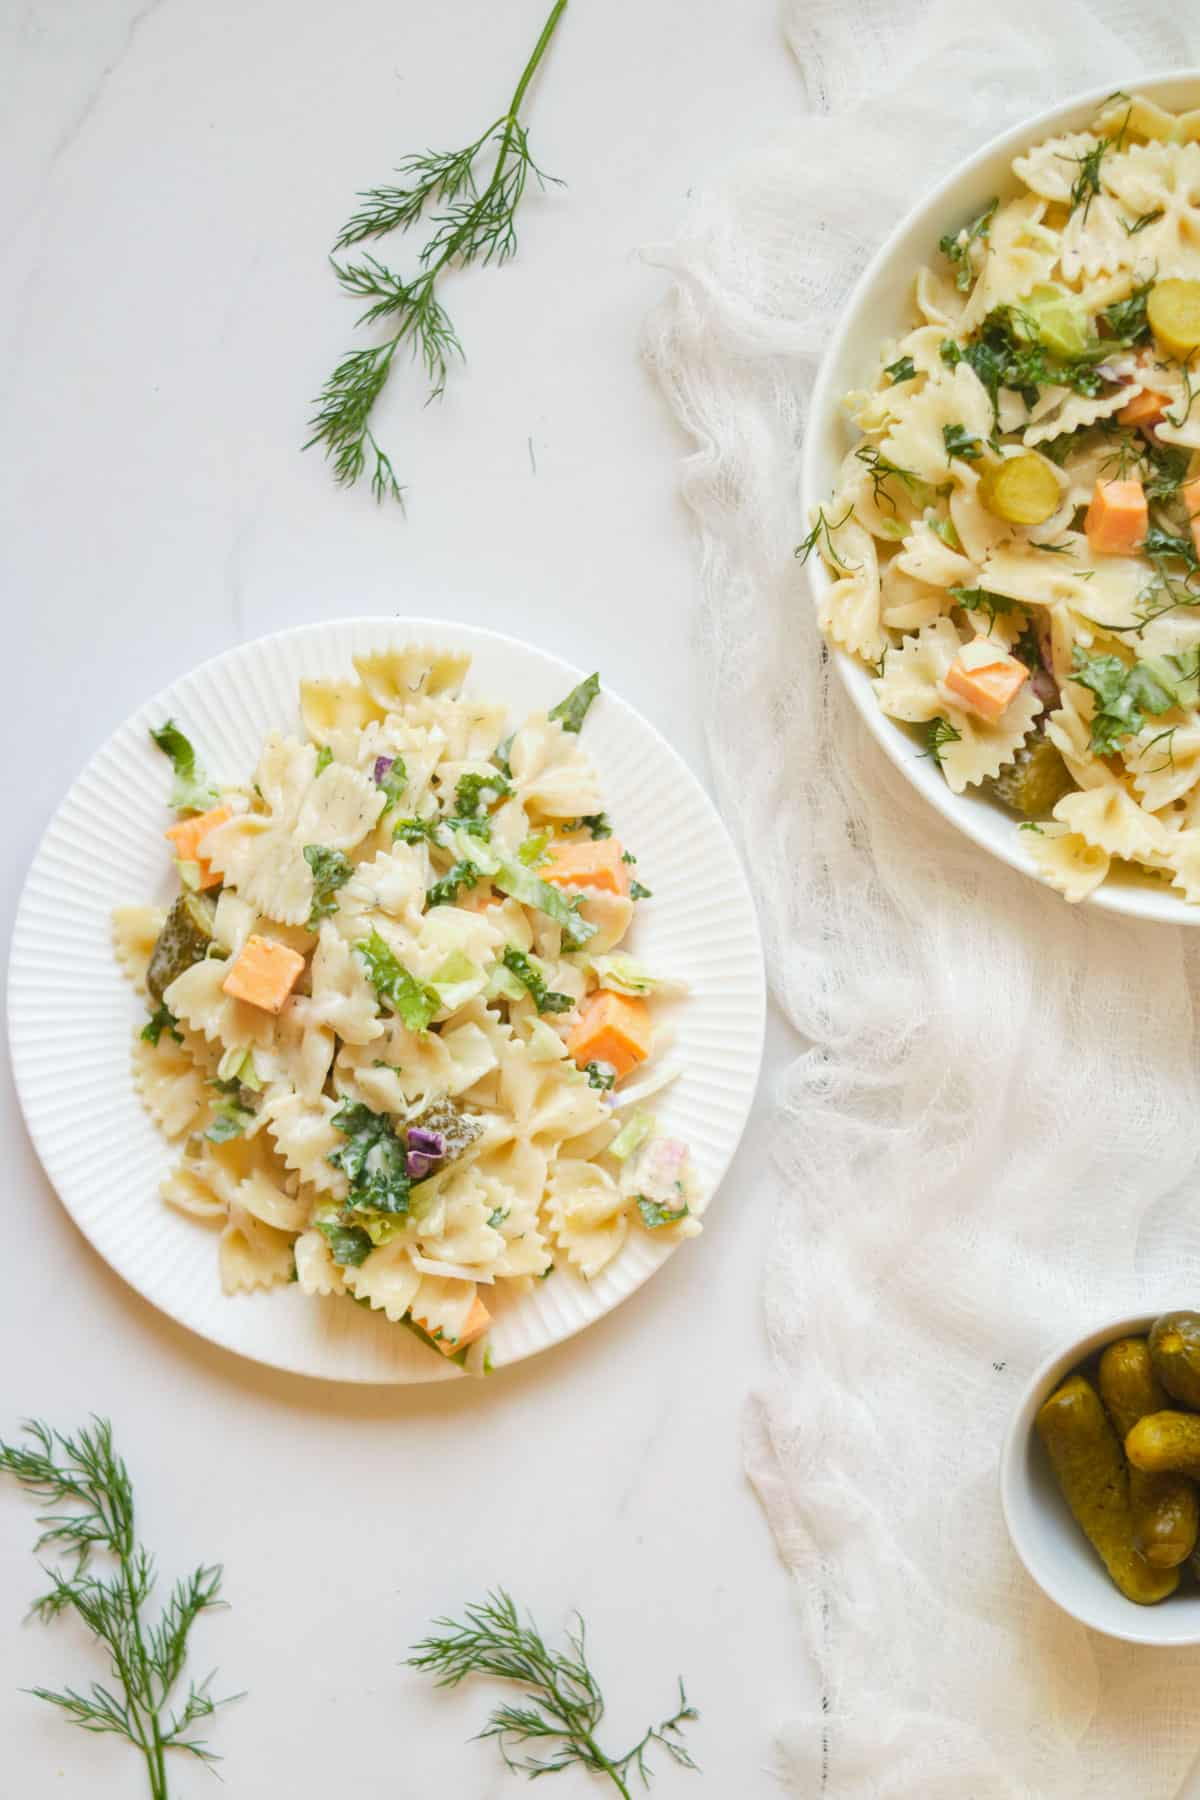 Table with plates of dill pickle pasta salad.